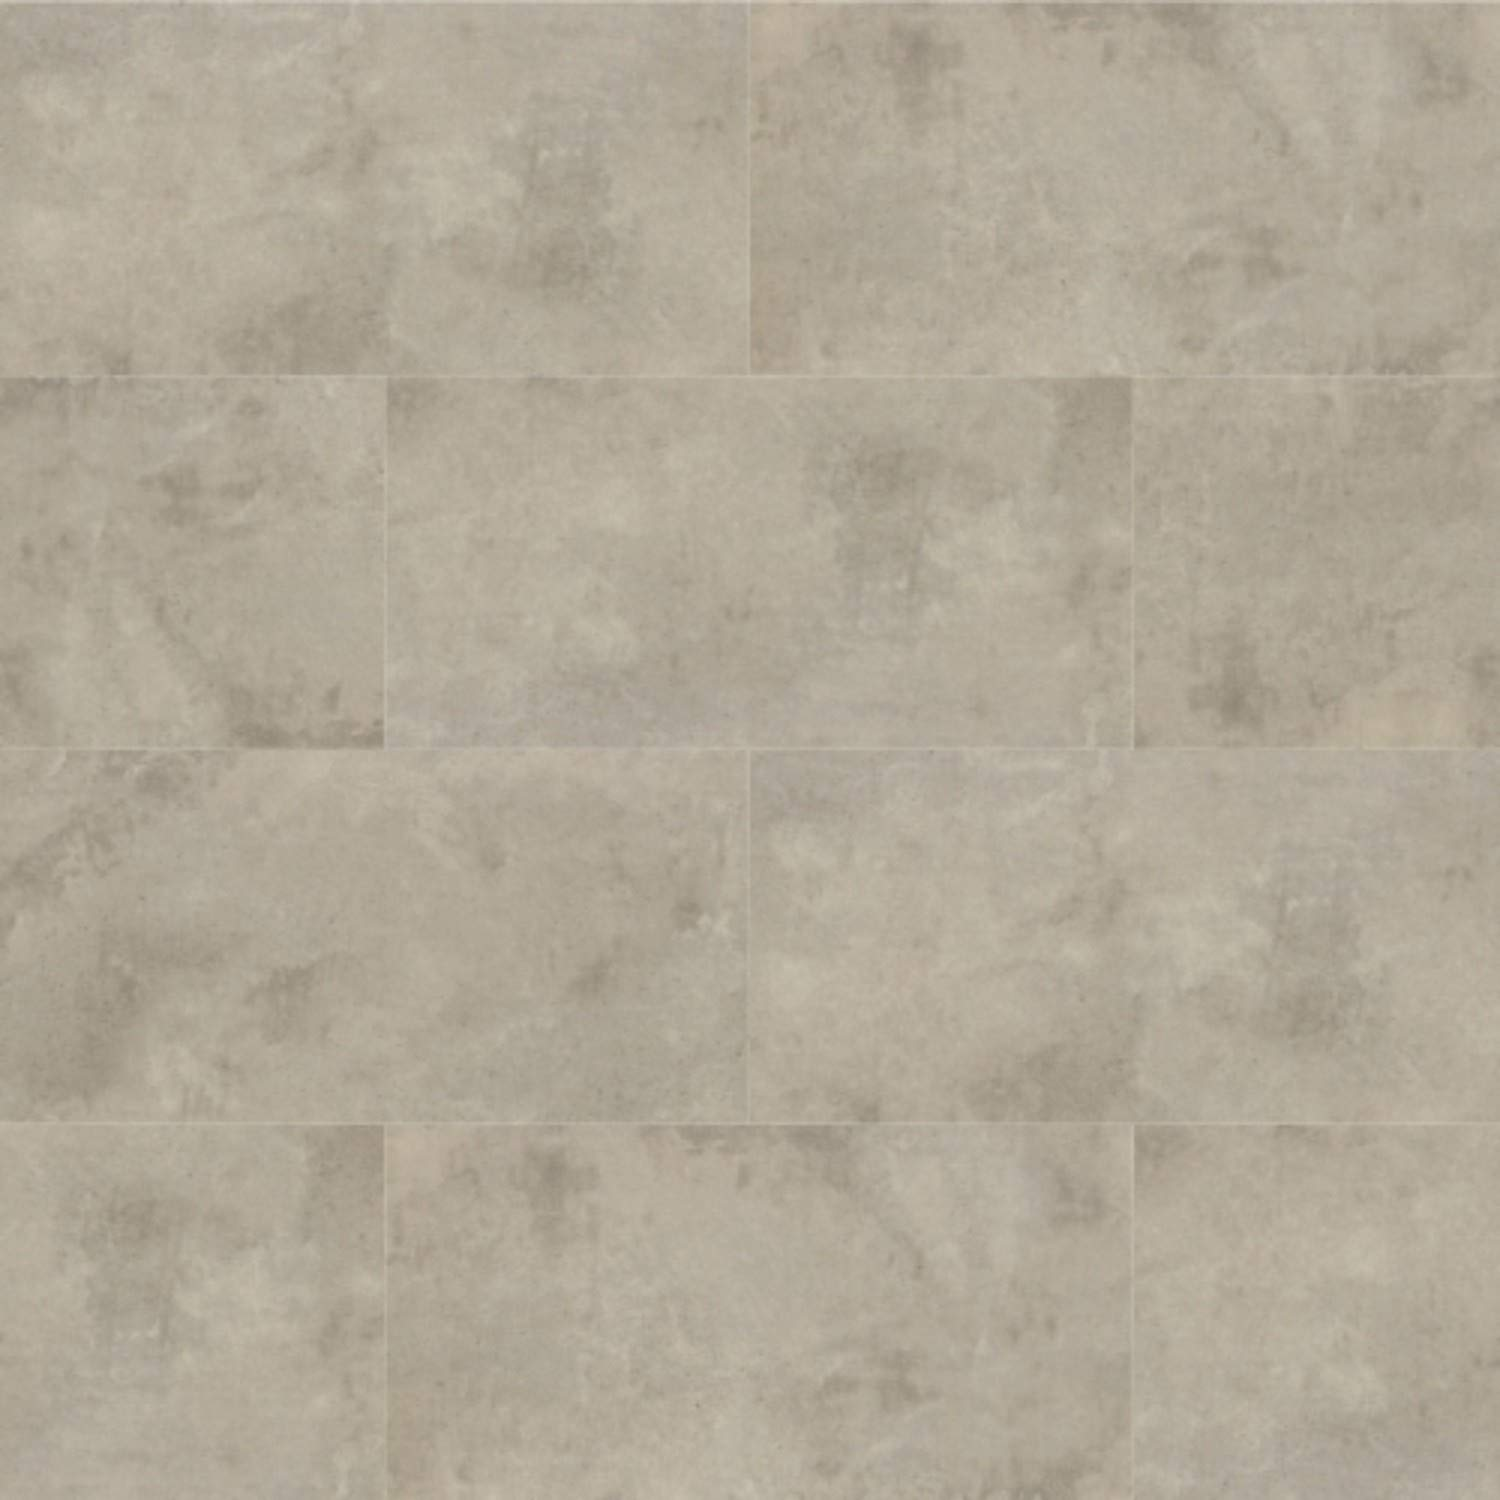 Mats Inc. X-Core Connect Stone Floor Tiles 12'' x 24'' Zen Light